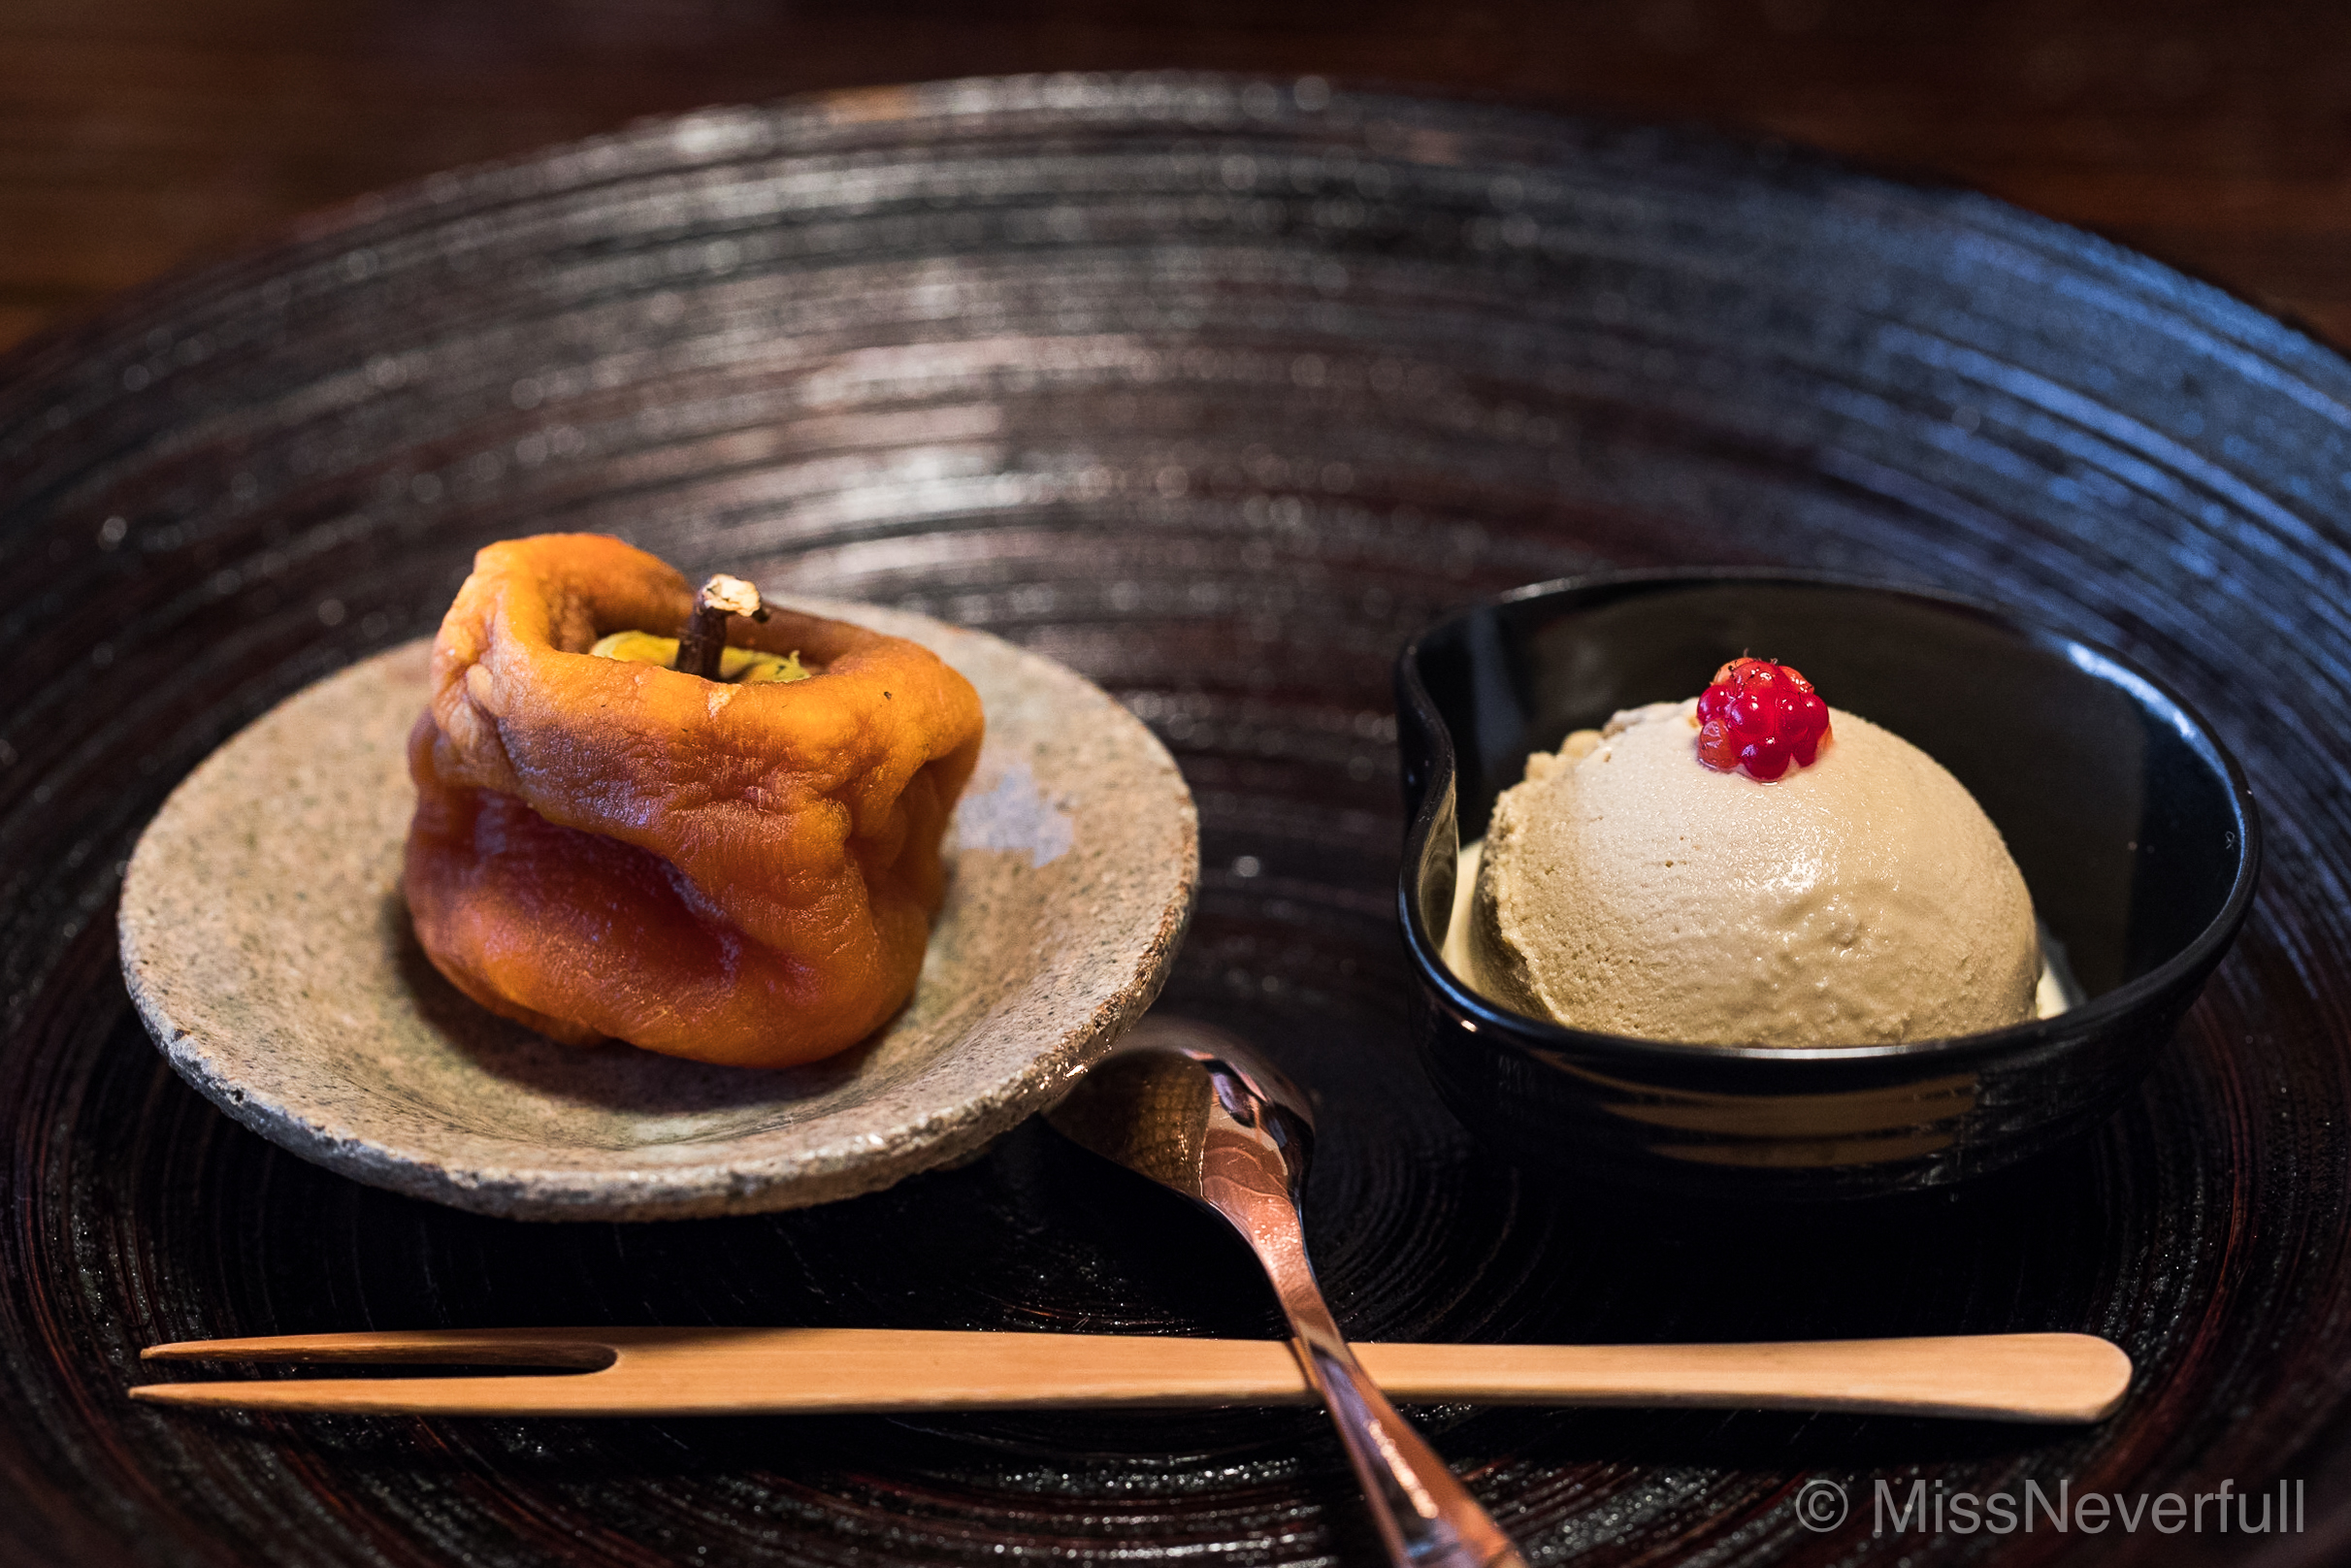 10. Dried persimmon and ice cream